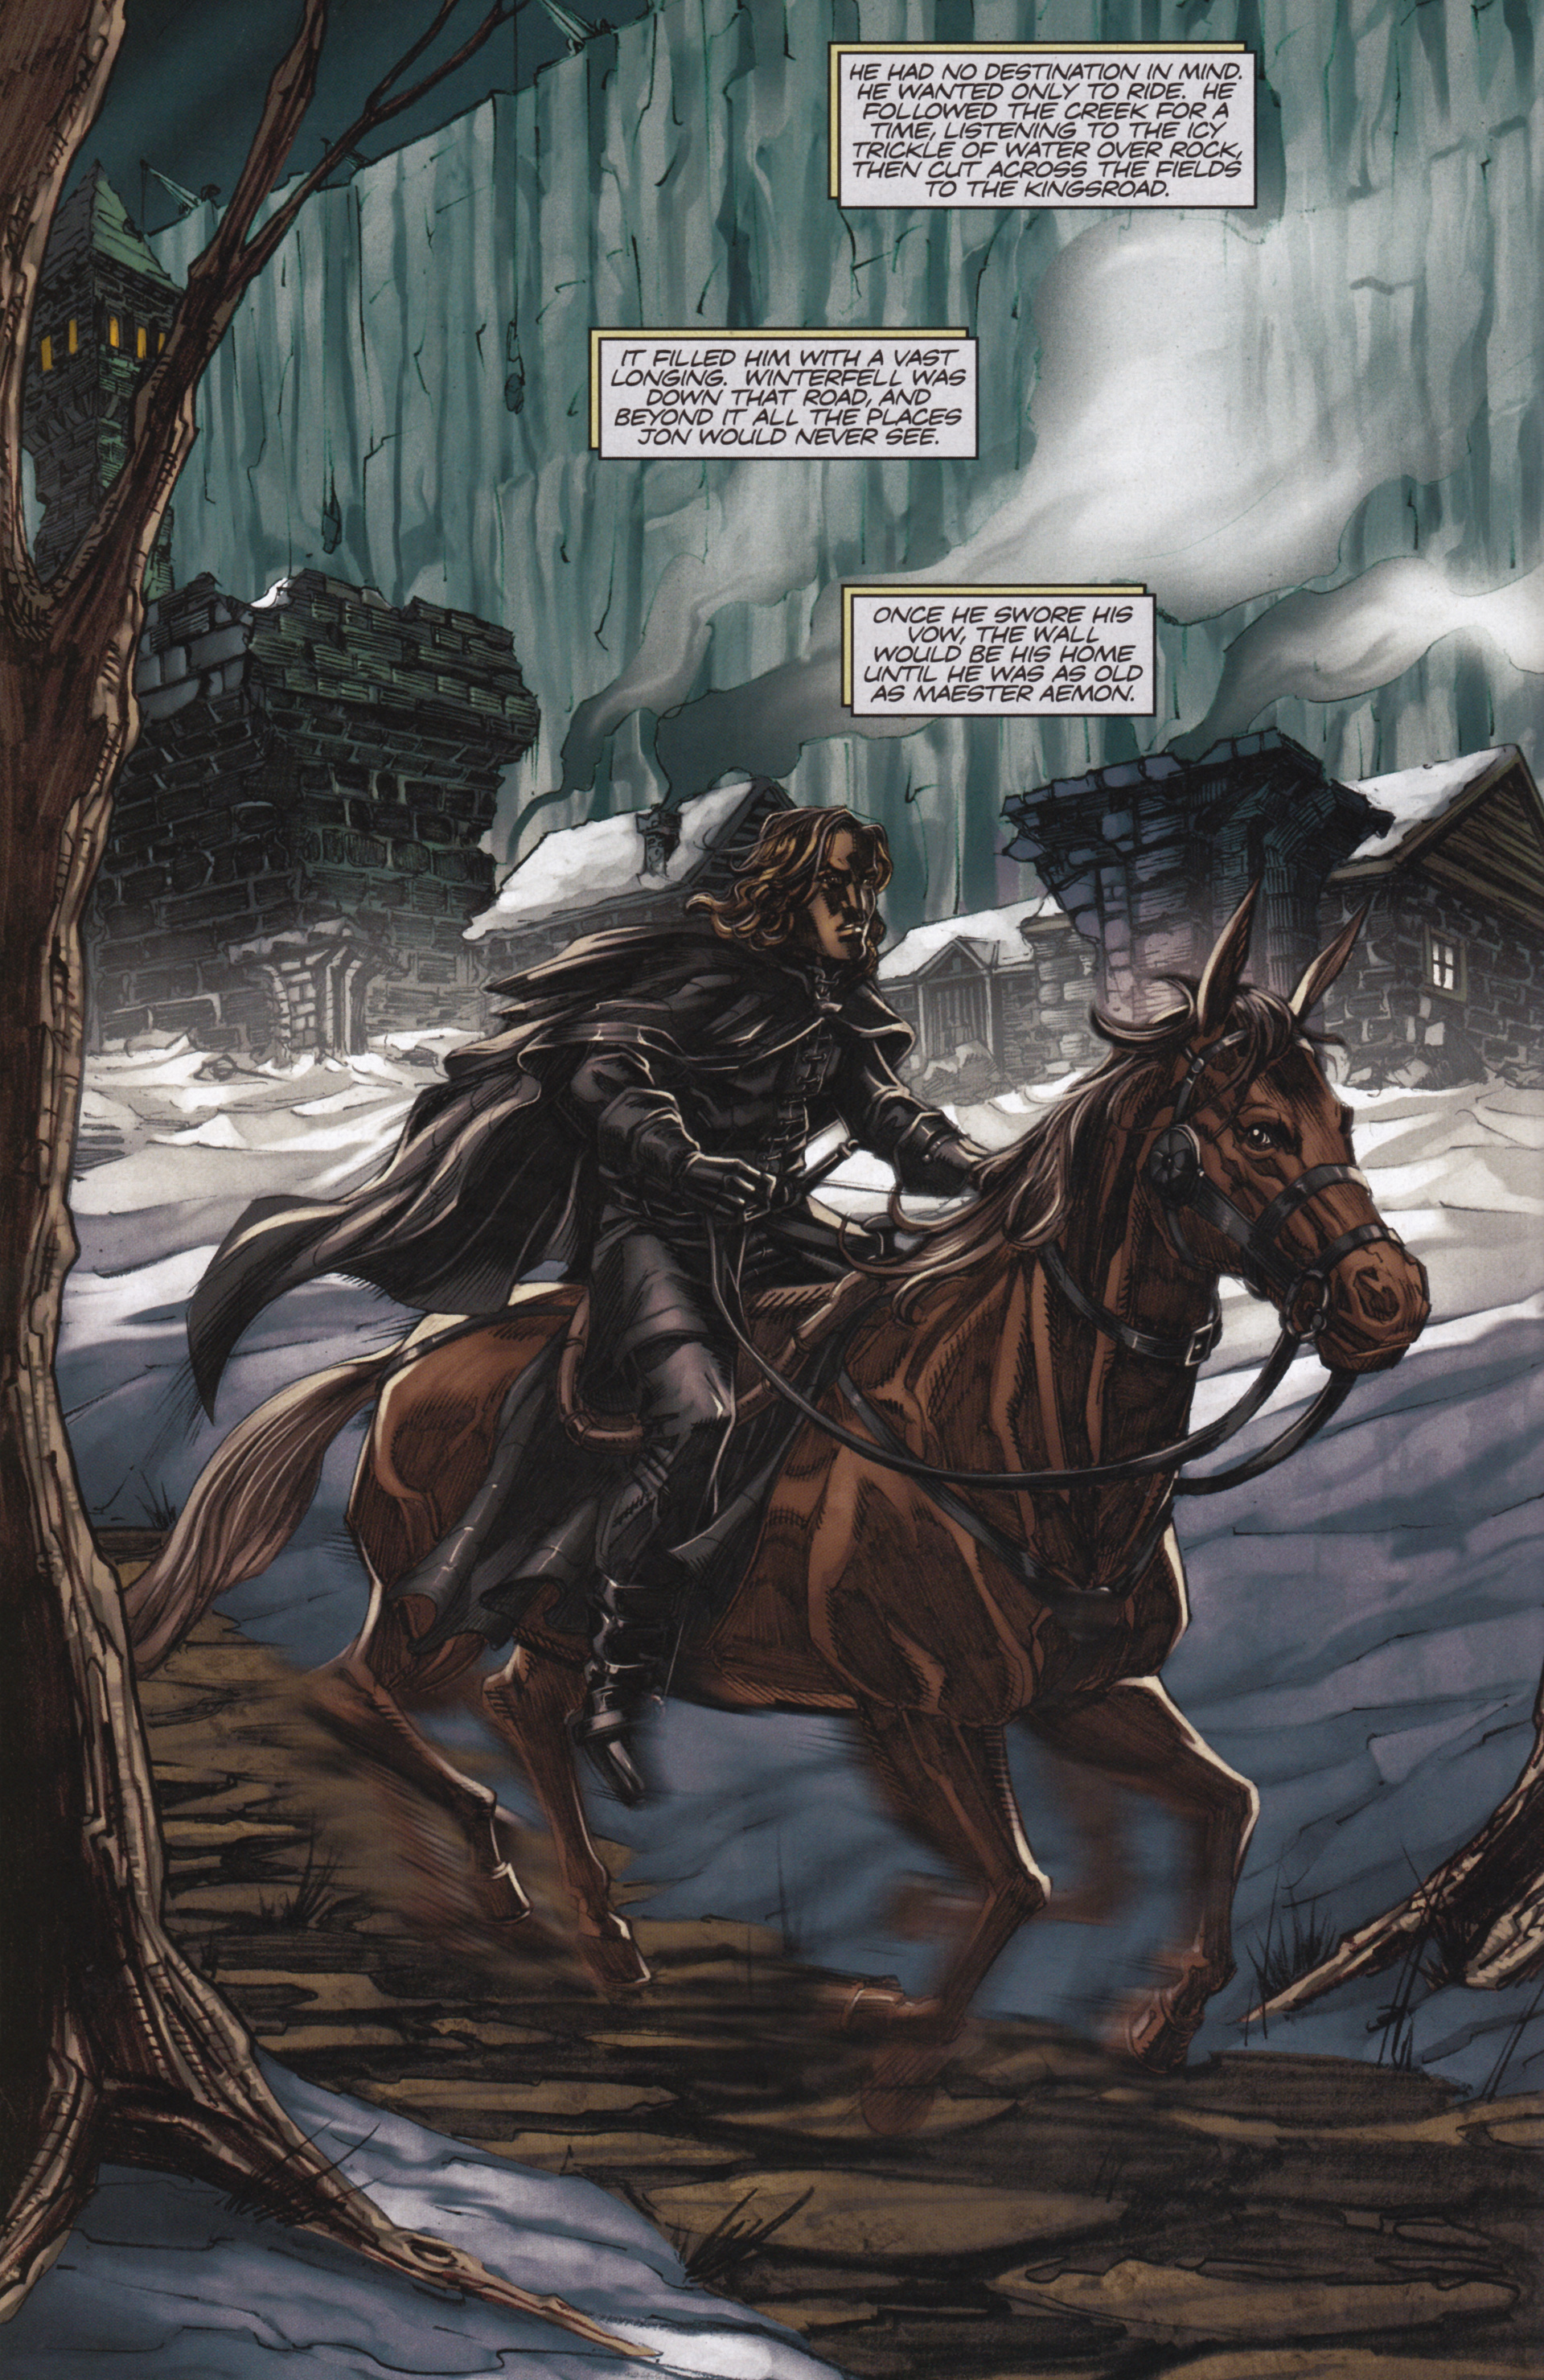 Read online A Game Of Thrones comic -  Issue #13 - 14